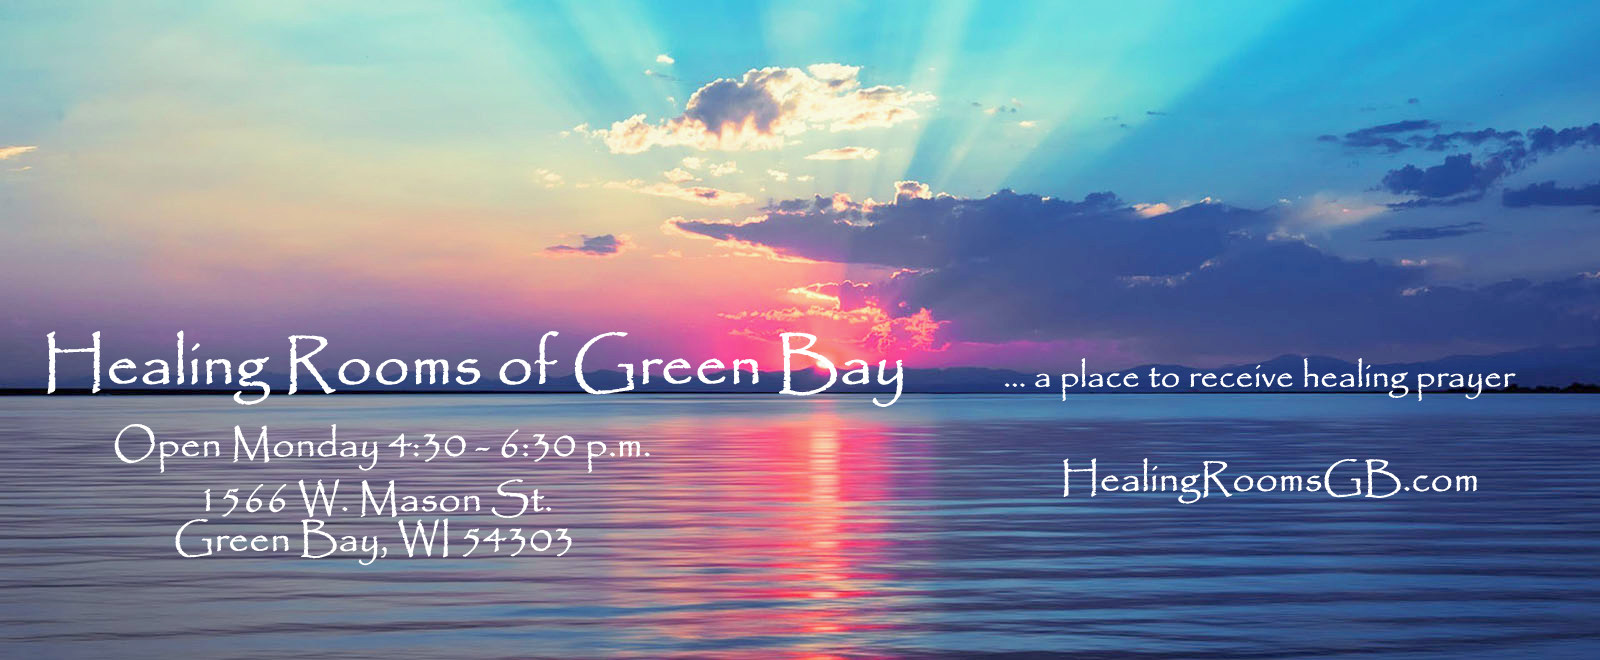 Healing Rooms of Green Bay